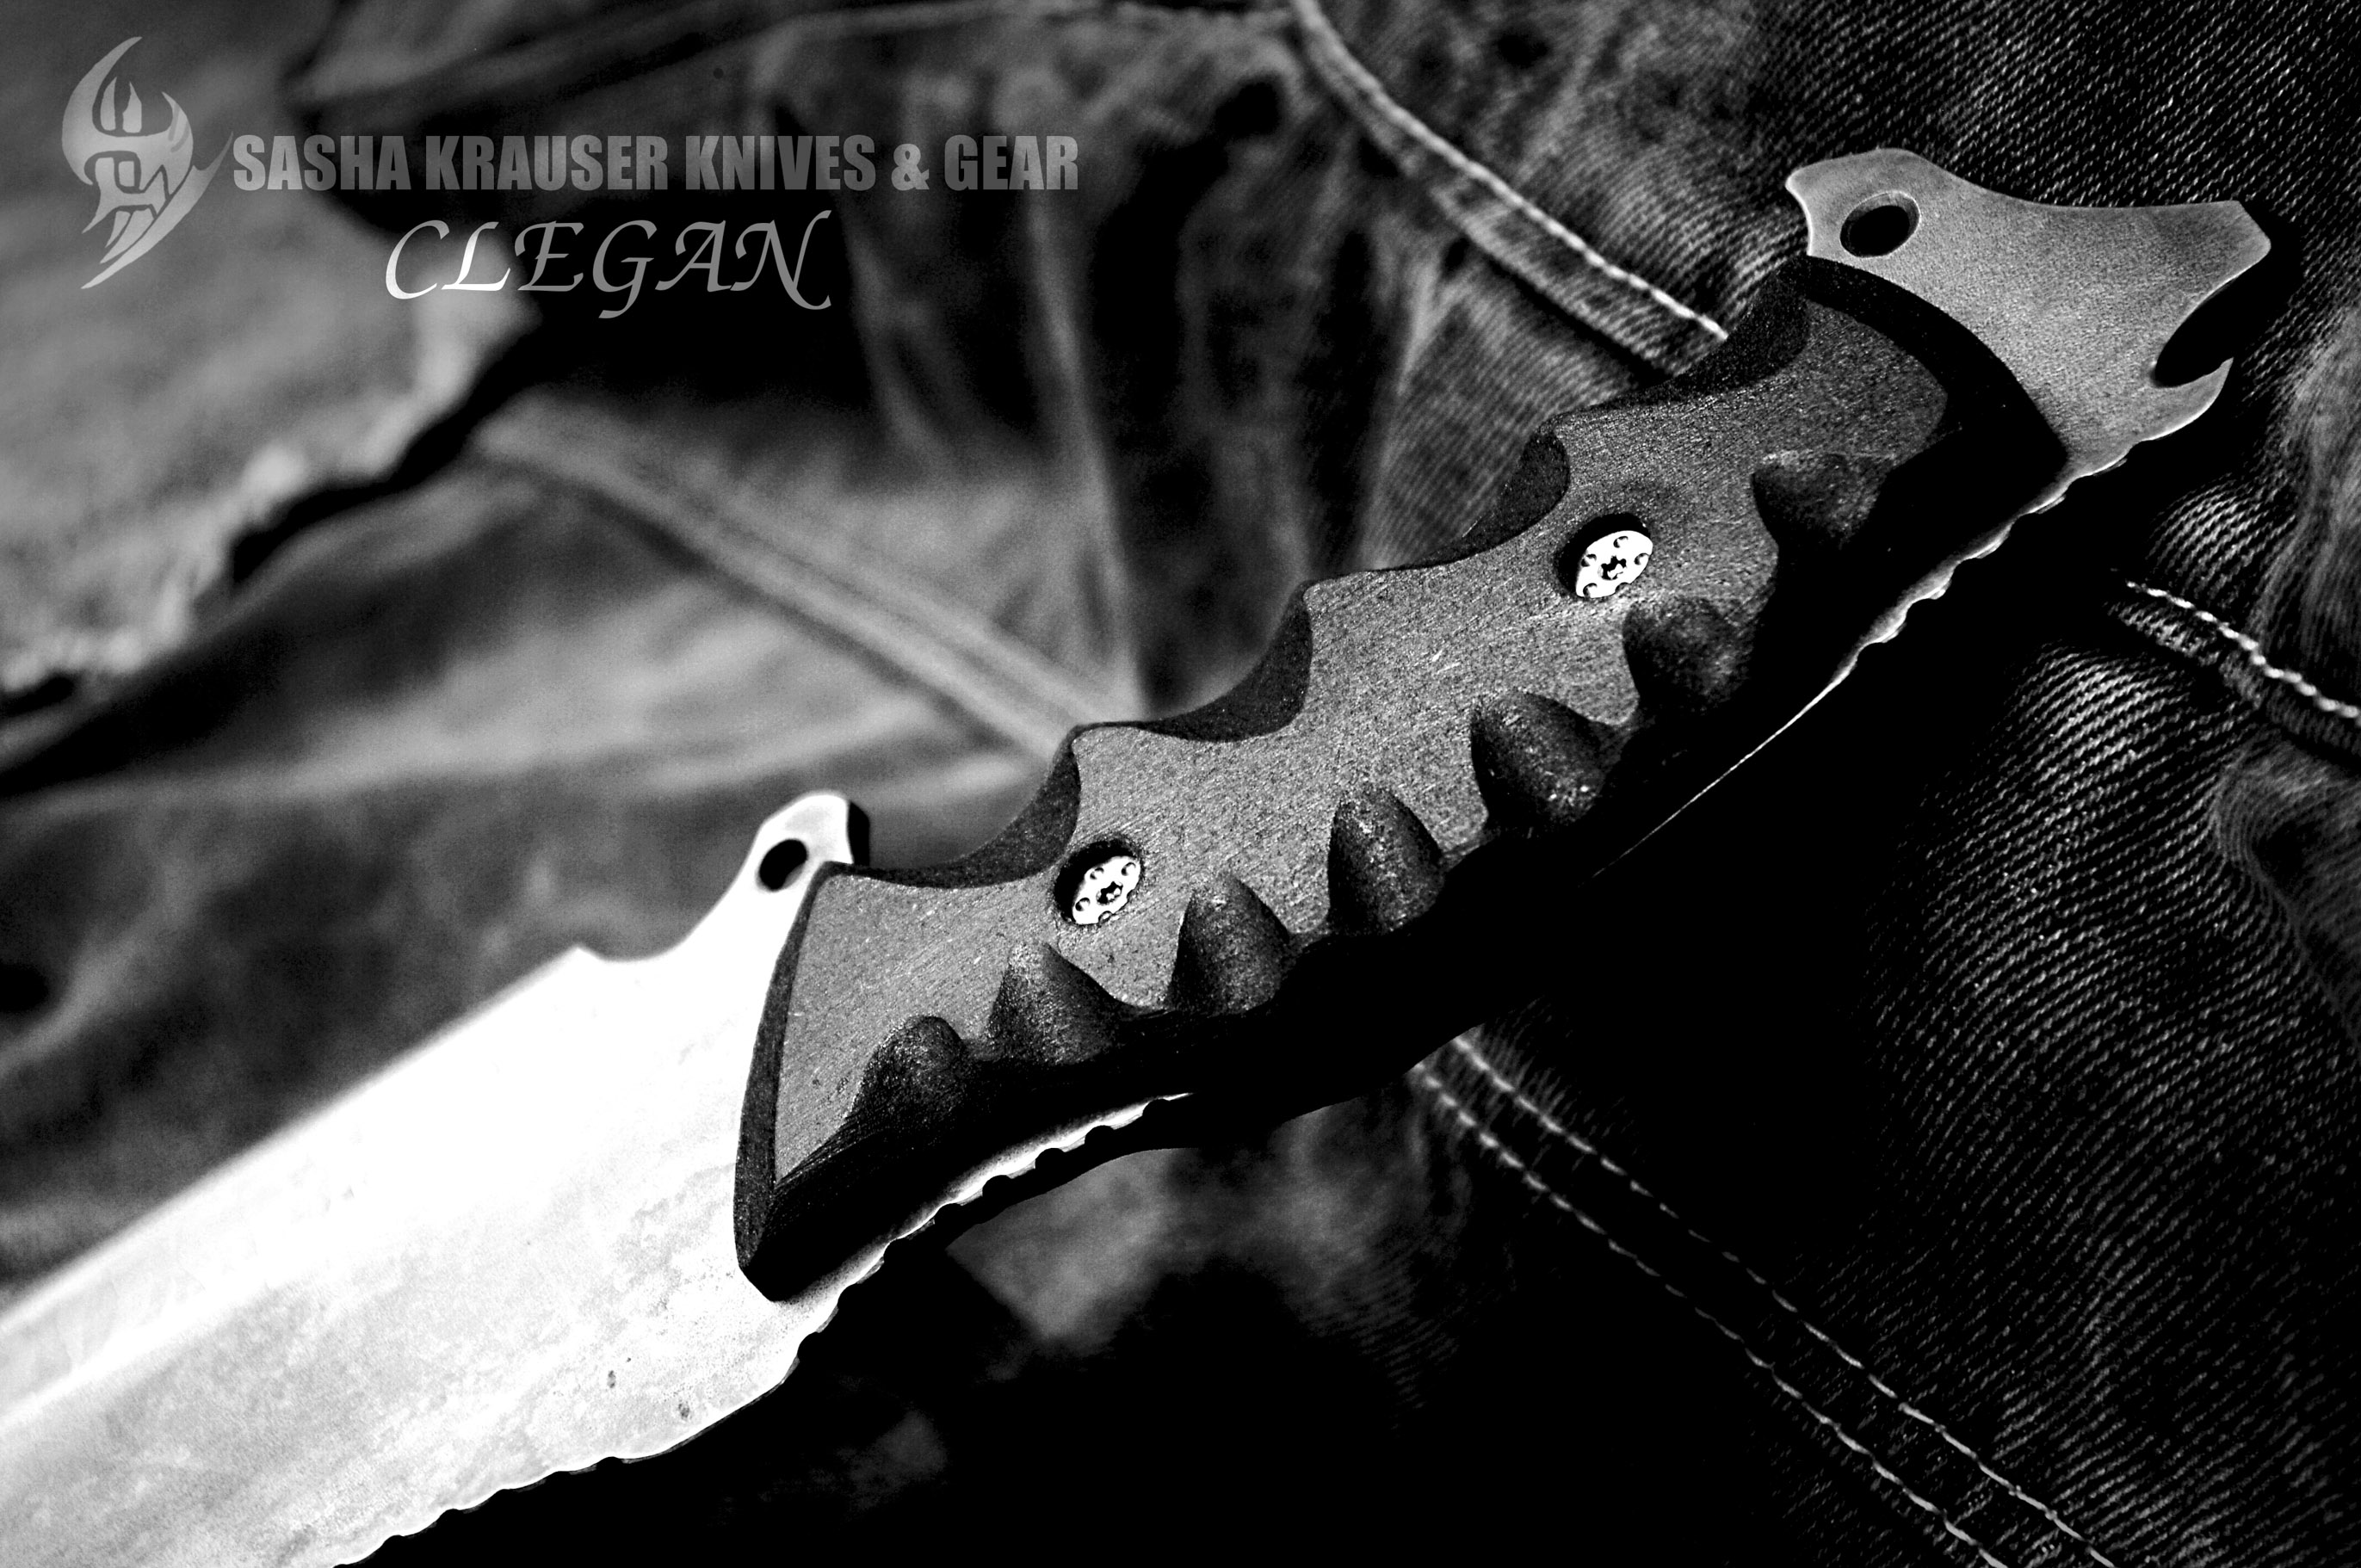 clégan full tang hunting knife